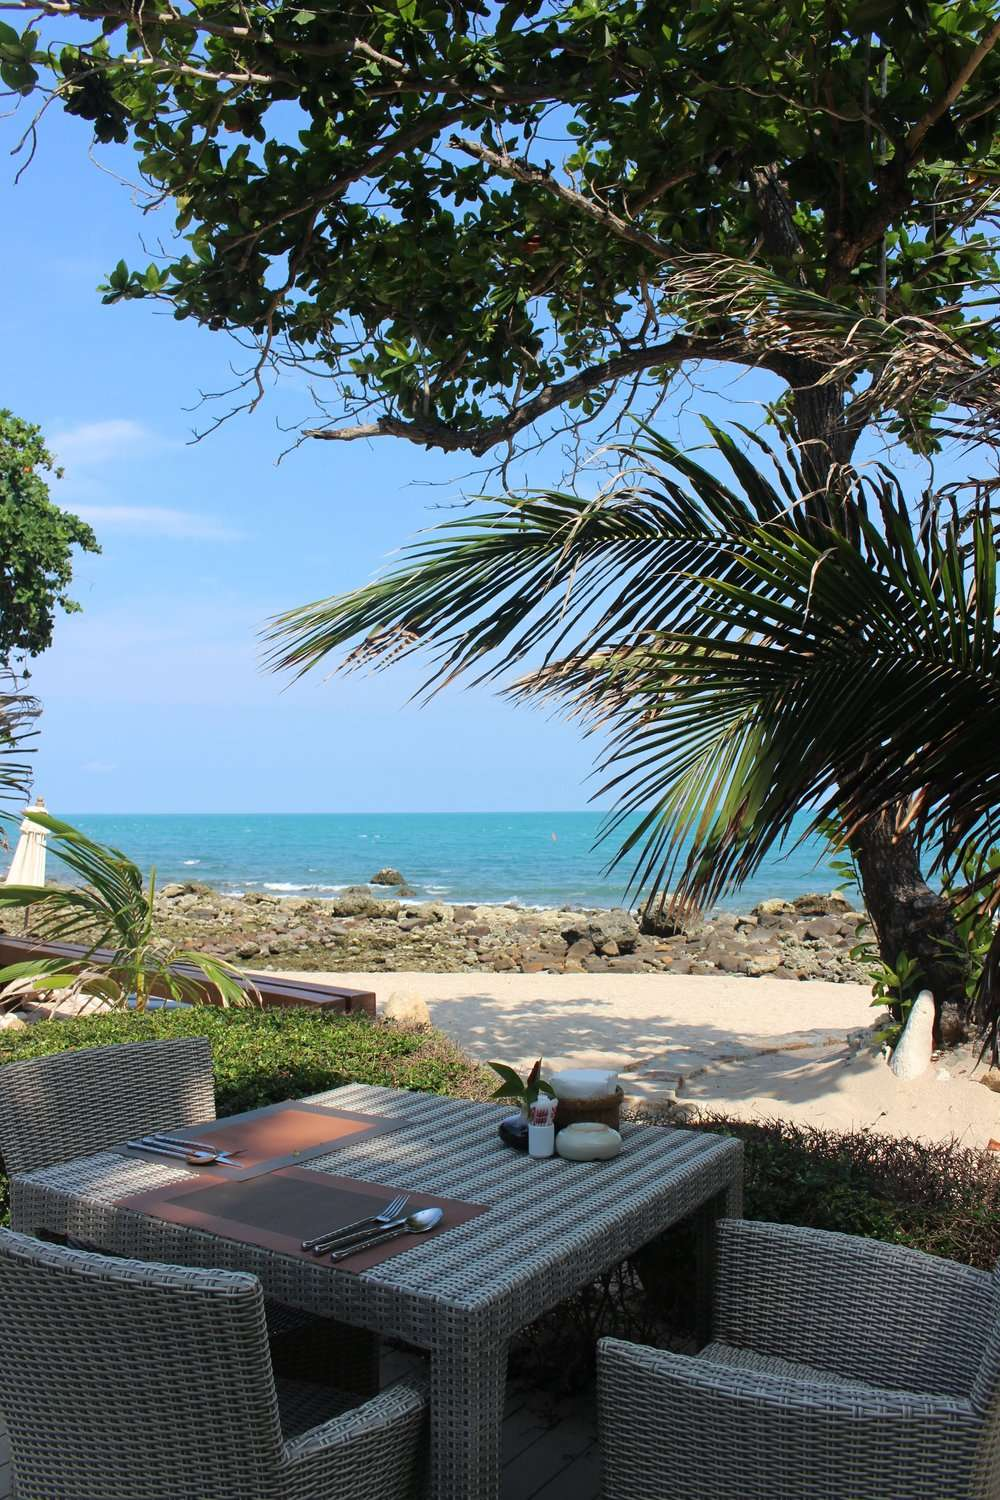 lunch with a sea view at Sea Dance Resort Koh Samui